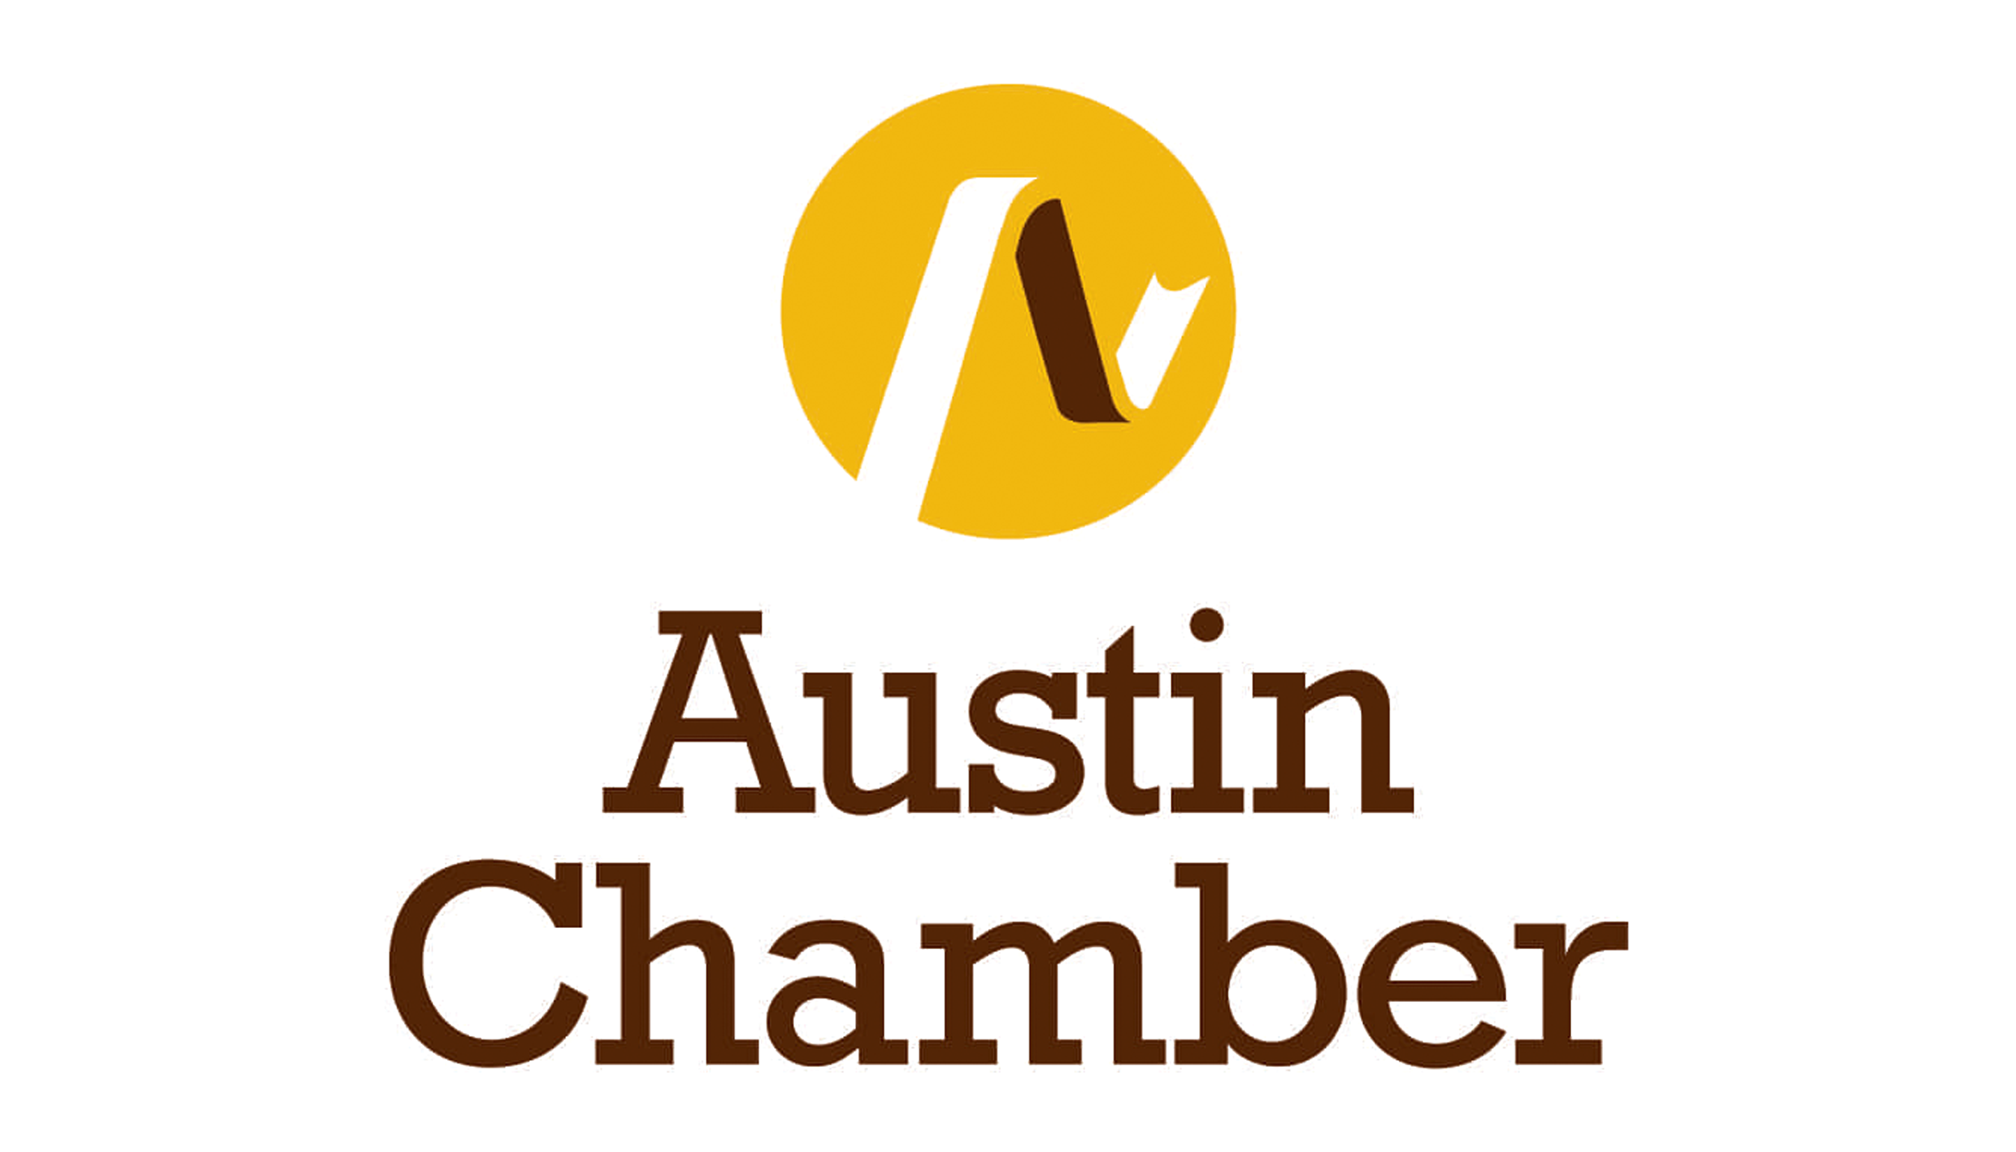 SPM - Austin Chamber of Commerce